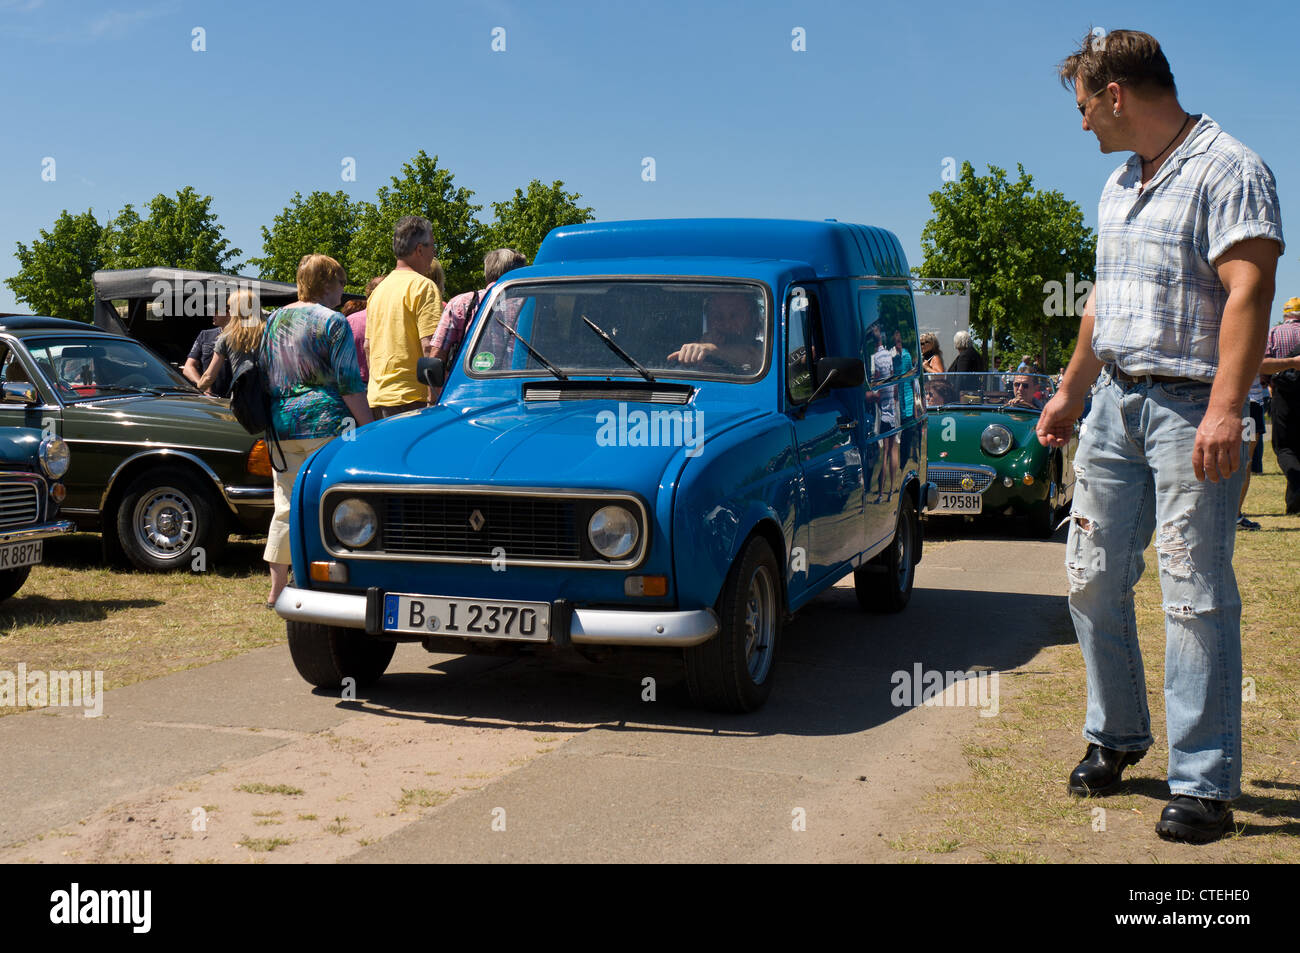 renault 4 stock photos renault 4 stock images alamy. Black Bedroom Furniture Sets. Home Design Ideas